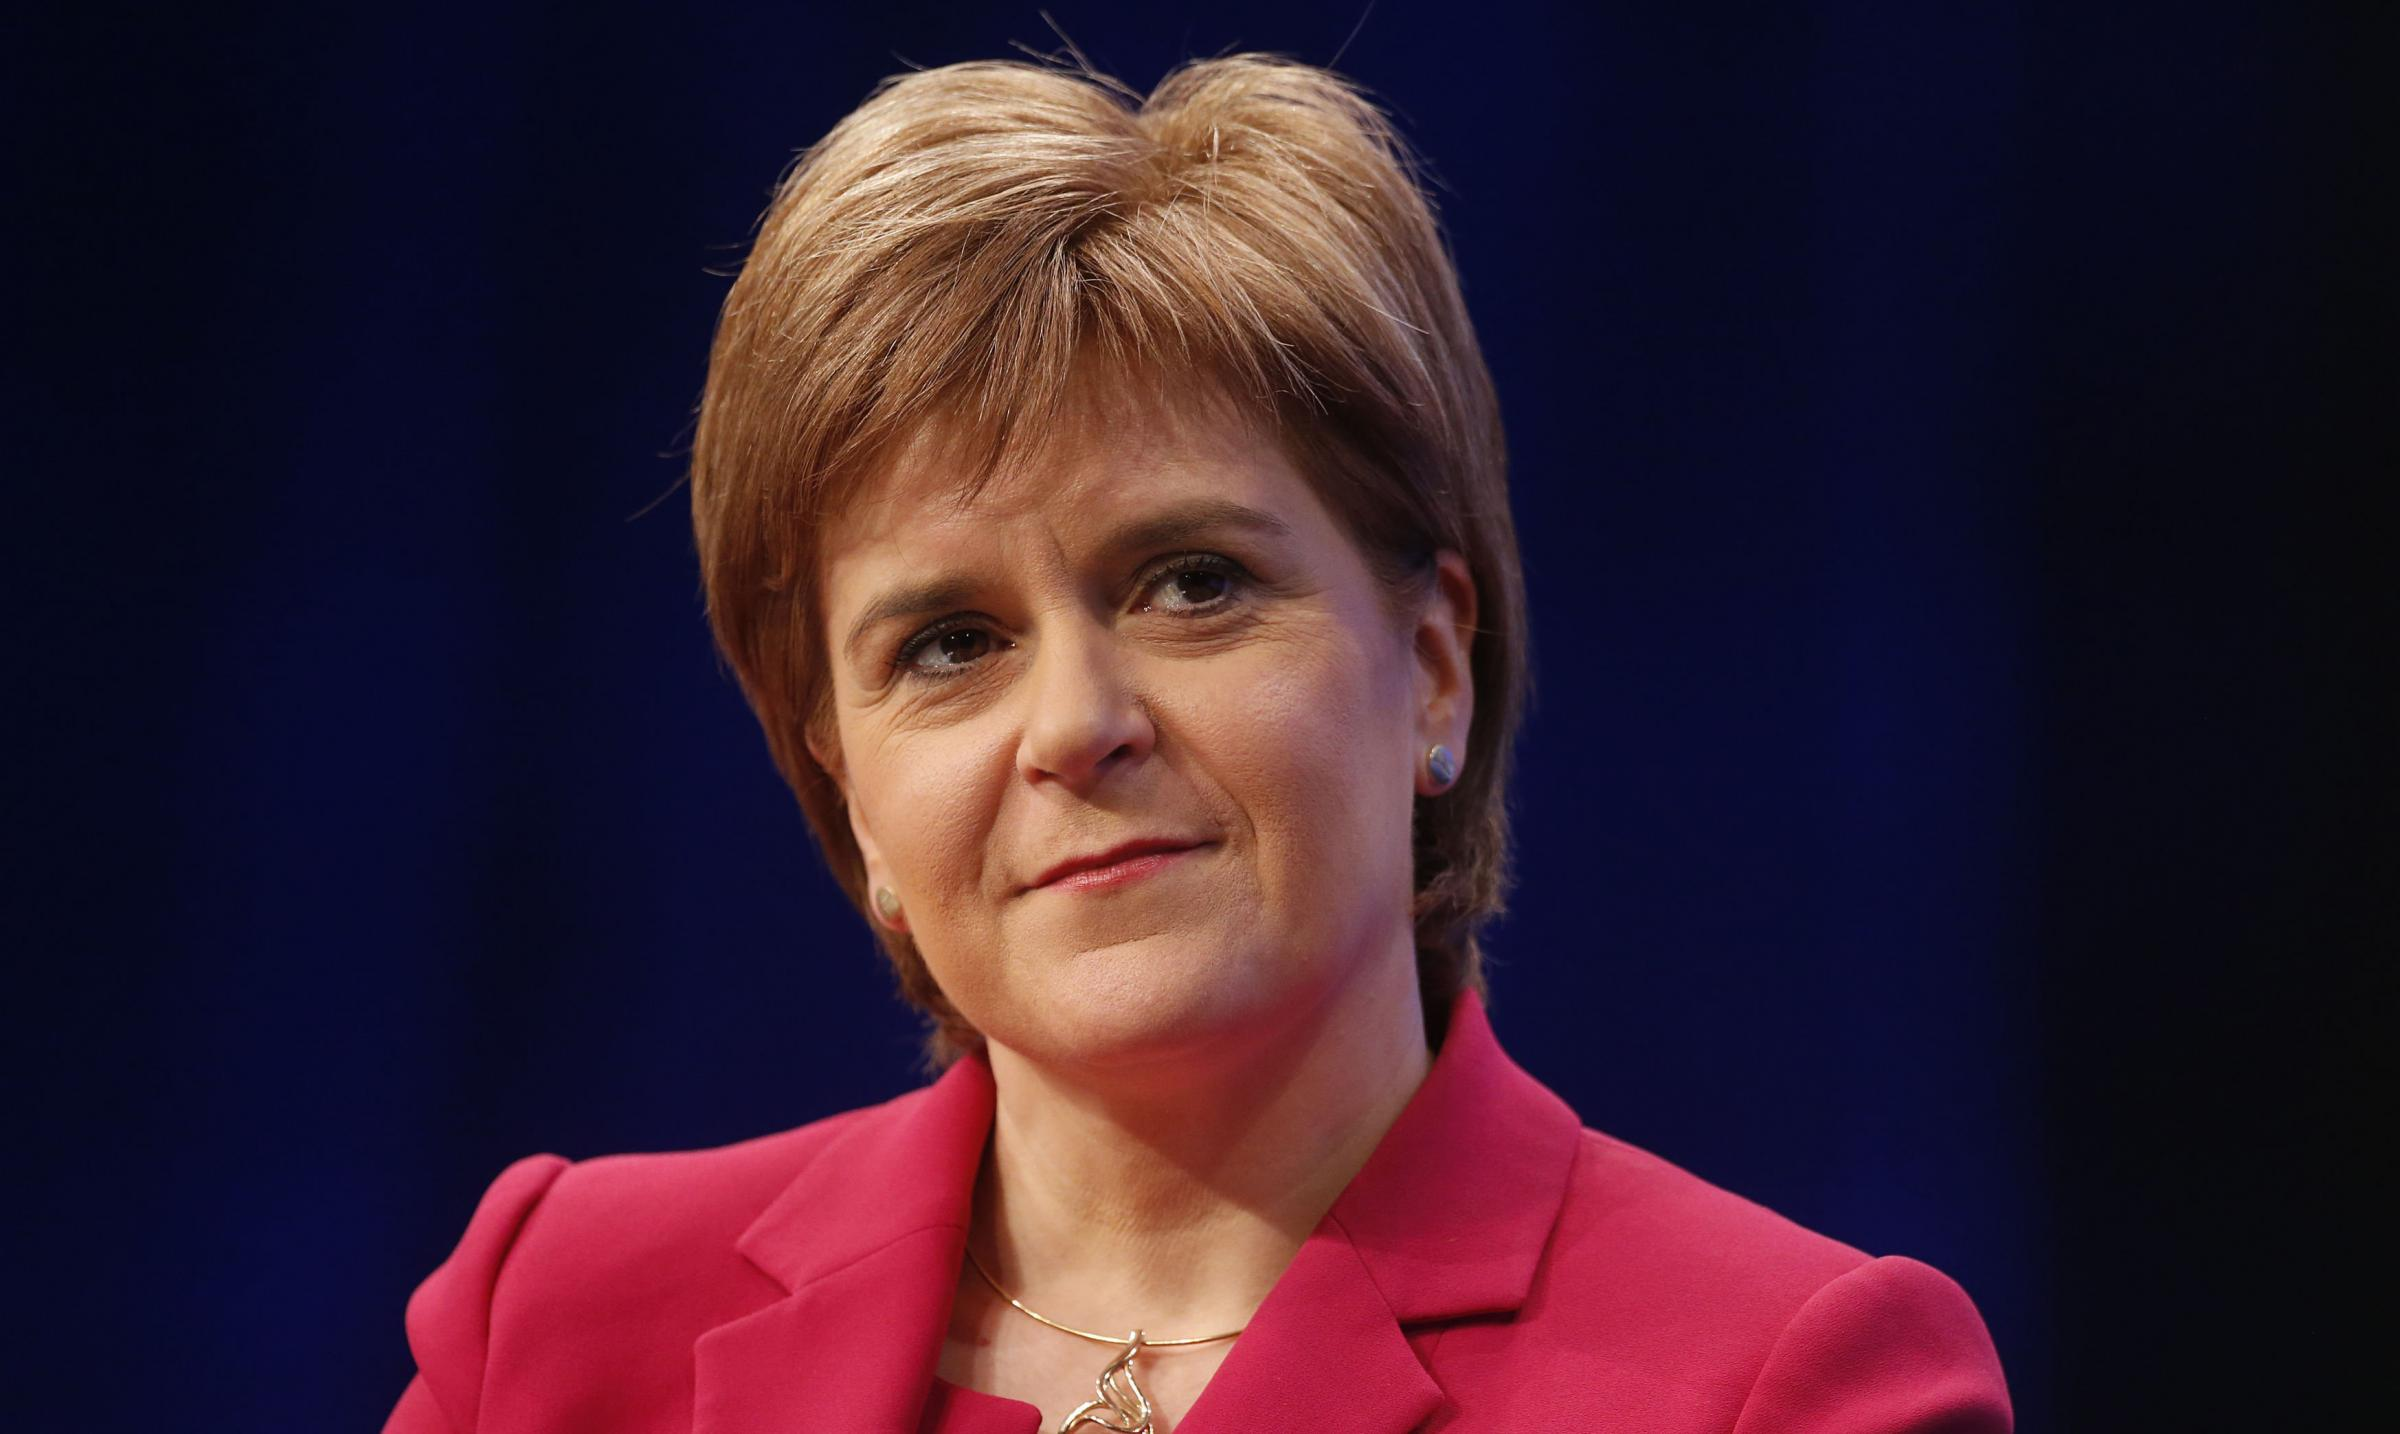 Daily Mail apologises to Nicola Sturgeon over incorrect Union flag story